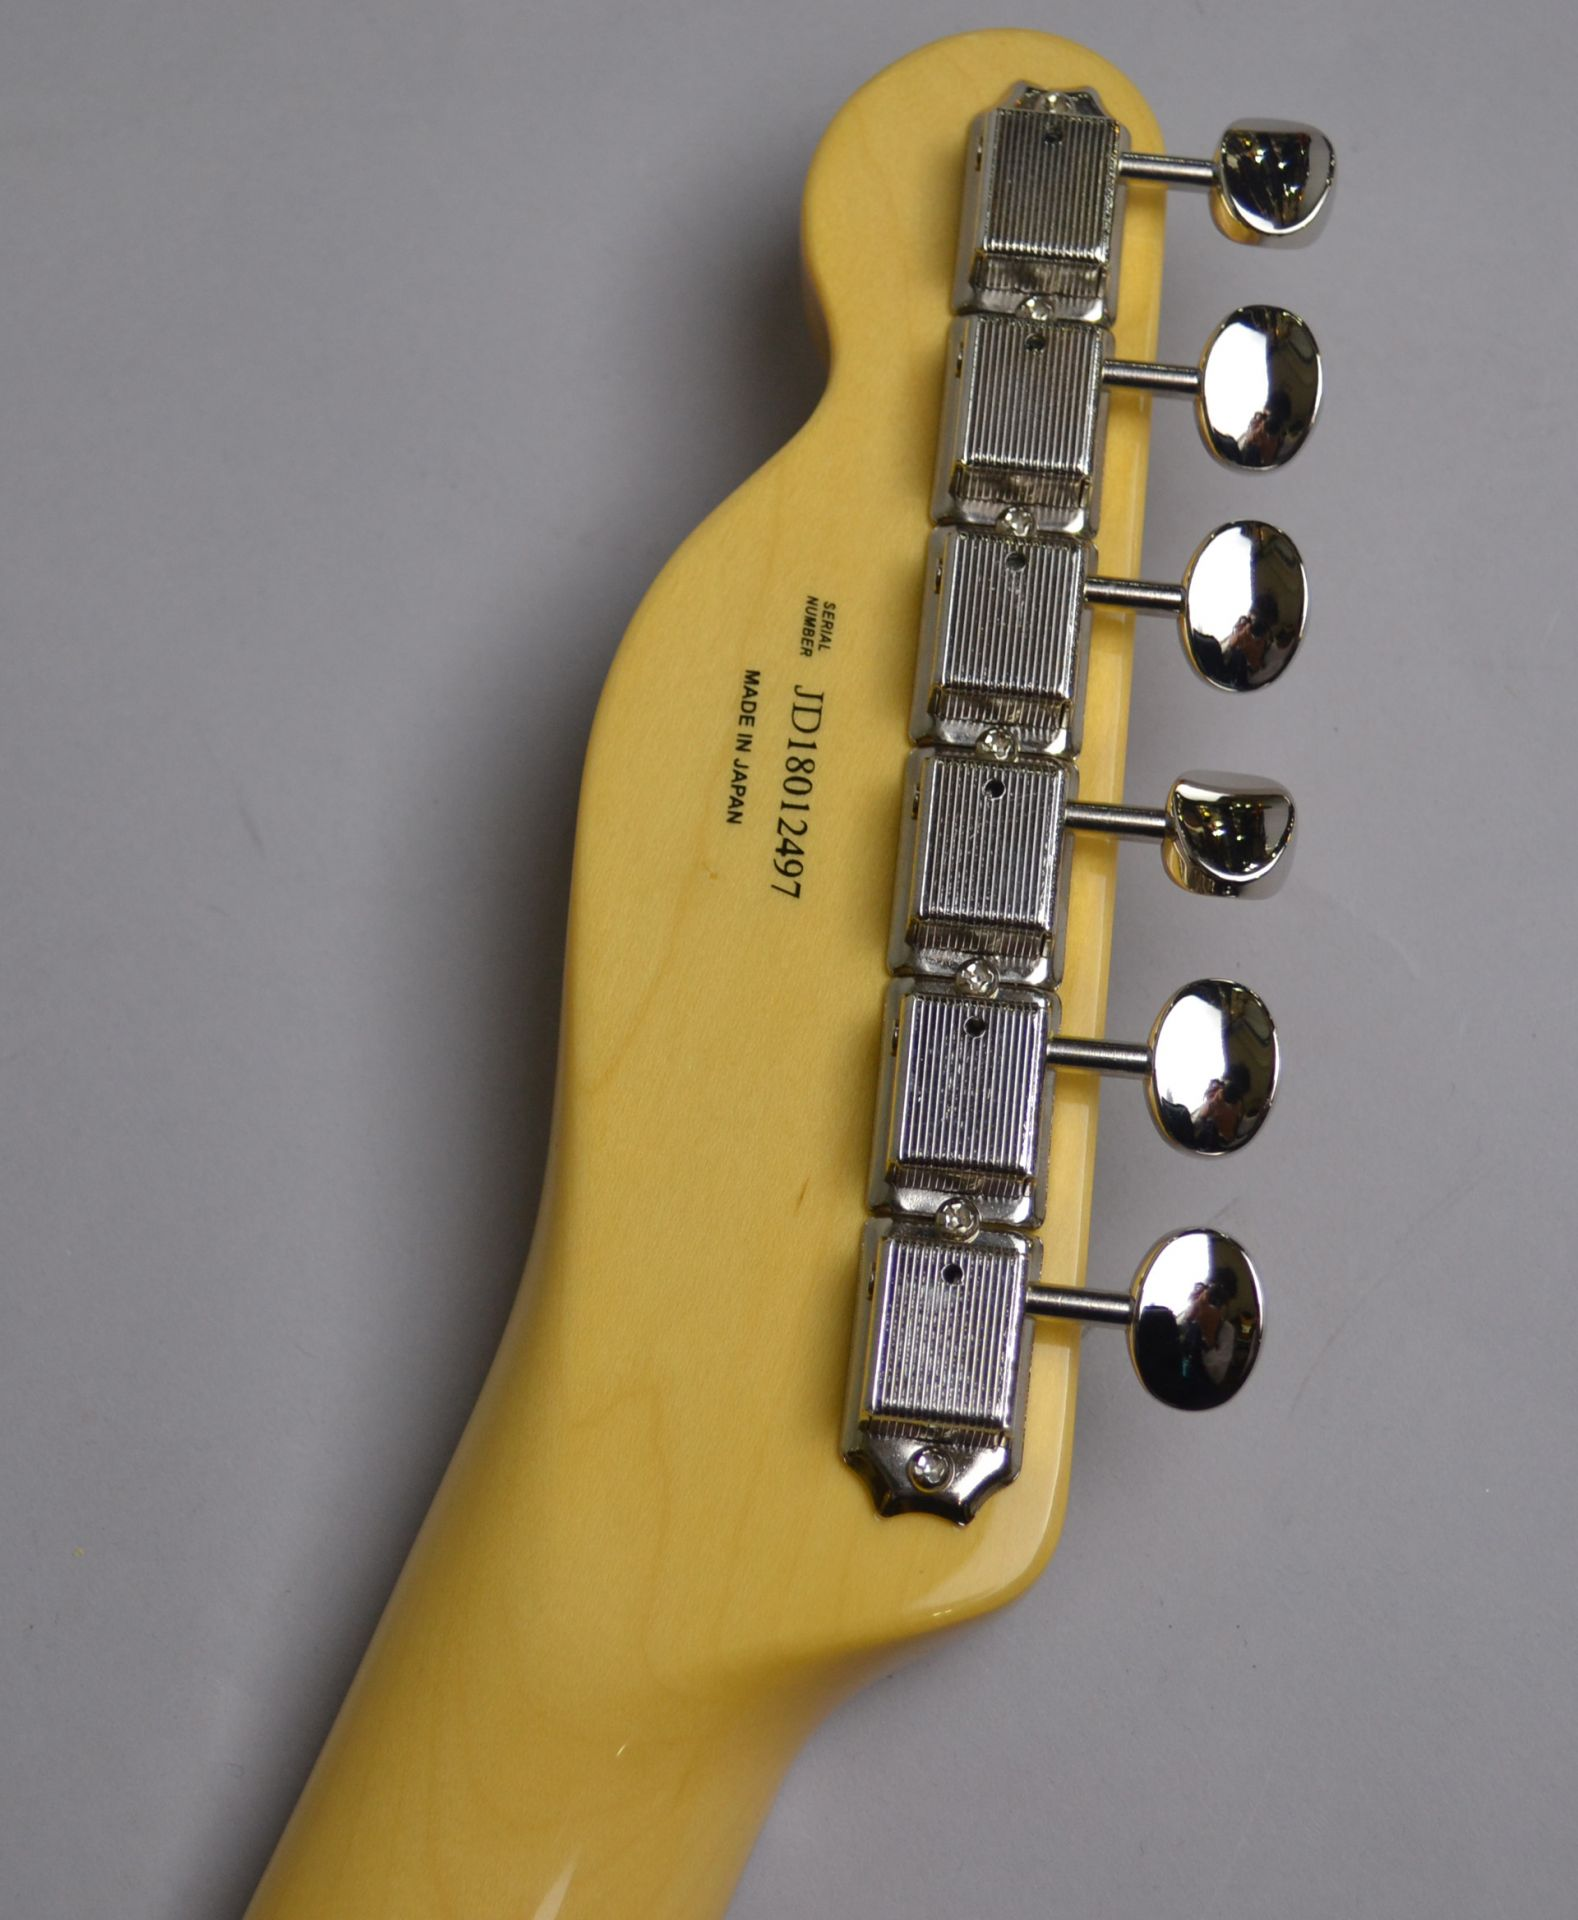 Made in Japan Traditional 69 Telecaster Thinline NAT シンラインのケース・その他画像